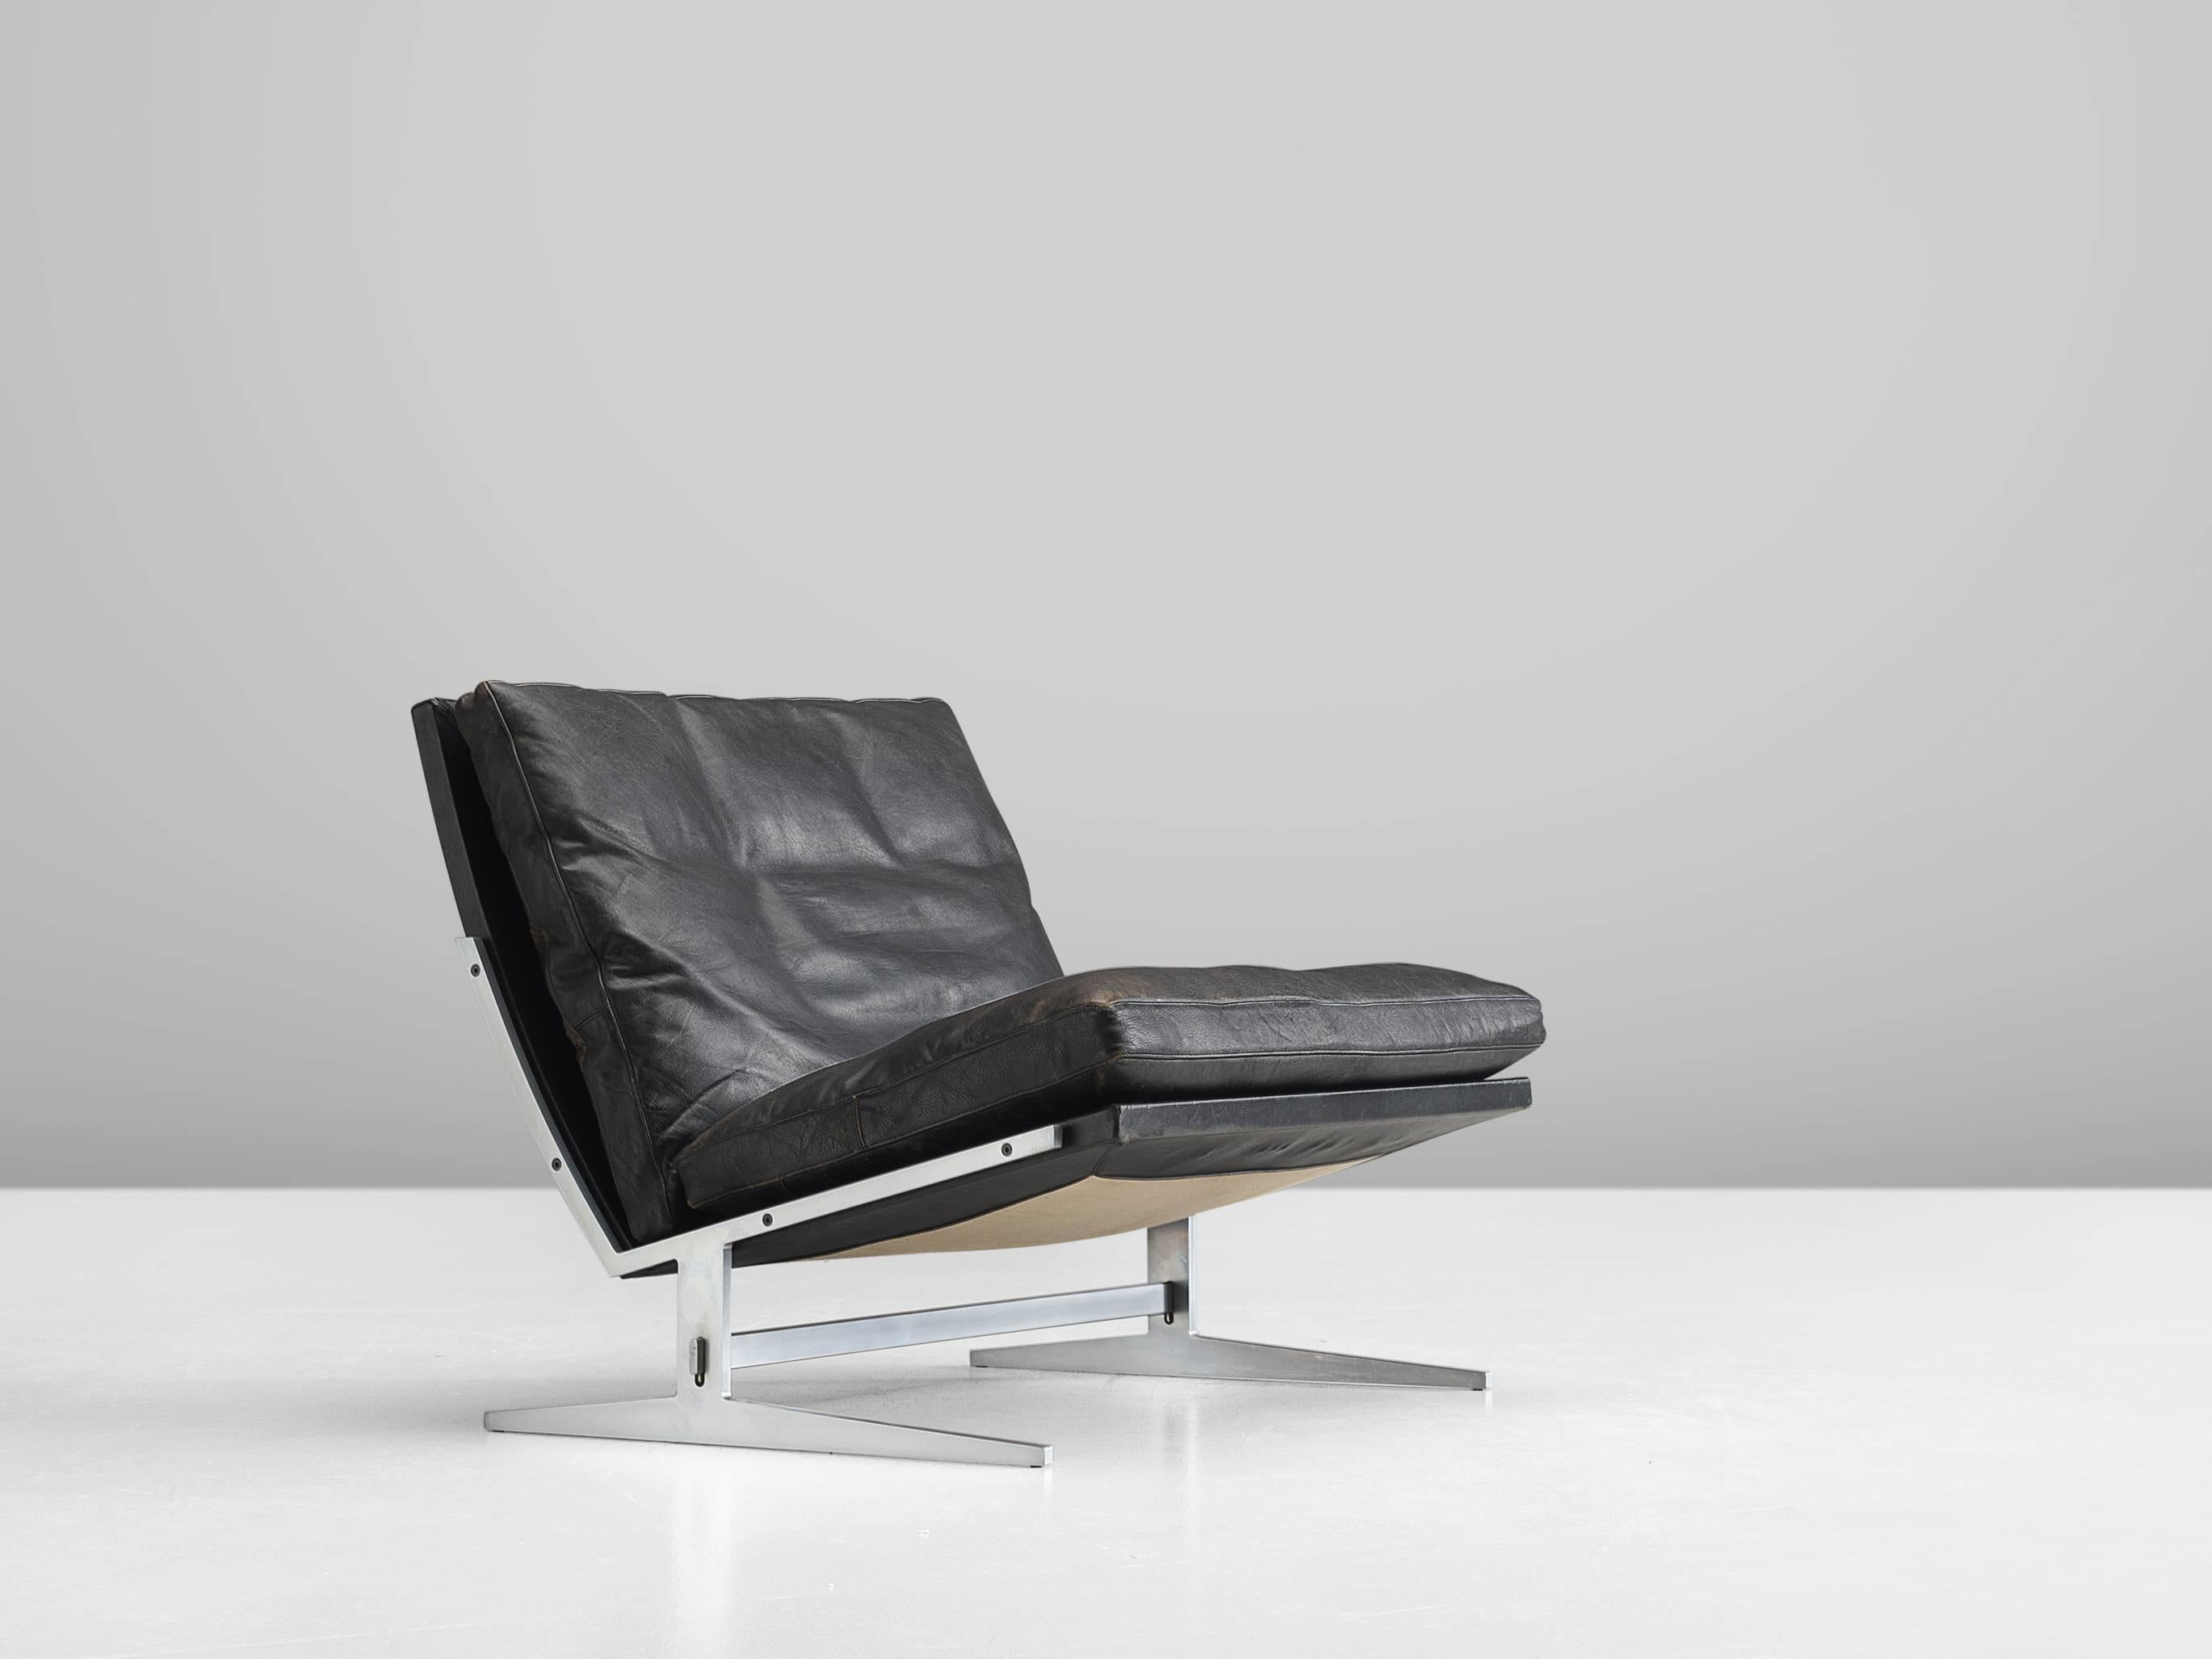 Lounge Chair Model BO561, In Brushed Steel And Leather, By Preben Fabricius  U0026 Jørgen